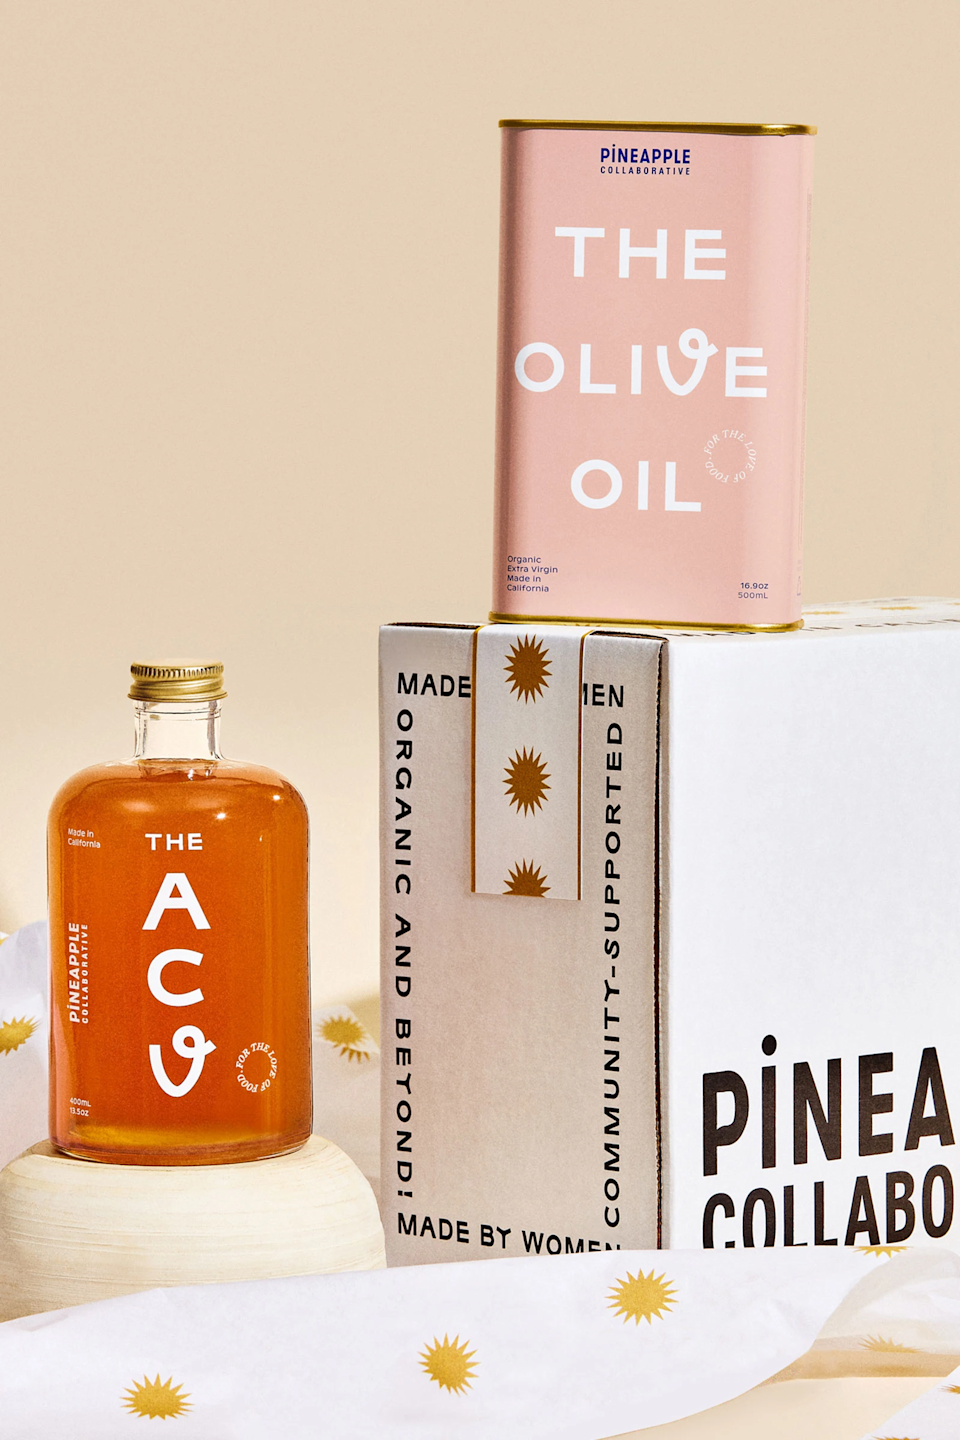 "<h2>Pineapple Collaborative The Pantry Set</h2><br>Have you seen a prettier duo? This olive oil and apple cider vinegar combo is made with produce that is sustainably harvested by female farmers. <br><br><strong>Pineapple Collaborative</strong> The Pantry Set, $, available at <a href=""https://go.skimresources.com/?id=30283X879131&url=https%3A%2F%2Fwww.pineapplecollaborative.com%2Fproducts%2Fthe-pantry-set"" rel=""nofollow noopener"" target=""_blank"" data-ylk=""slk:Pineapple Collaborative"" class=""link rapid-noclick-resp"">Pineapple Collaborative</a>"